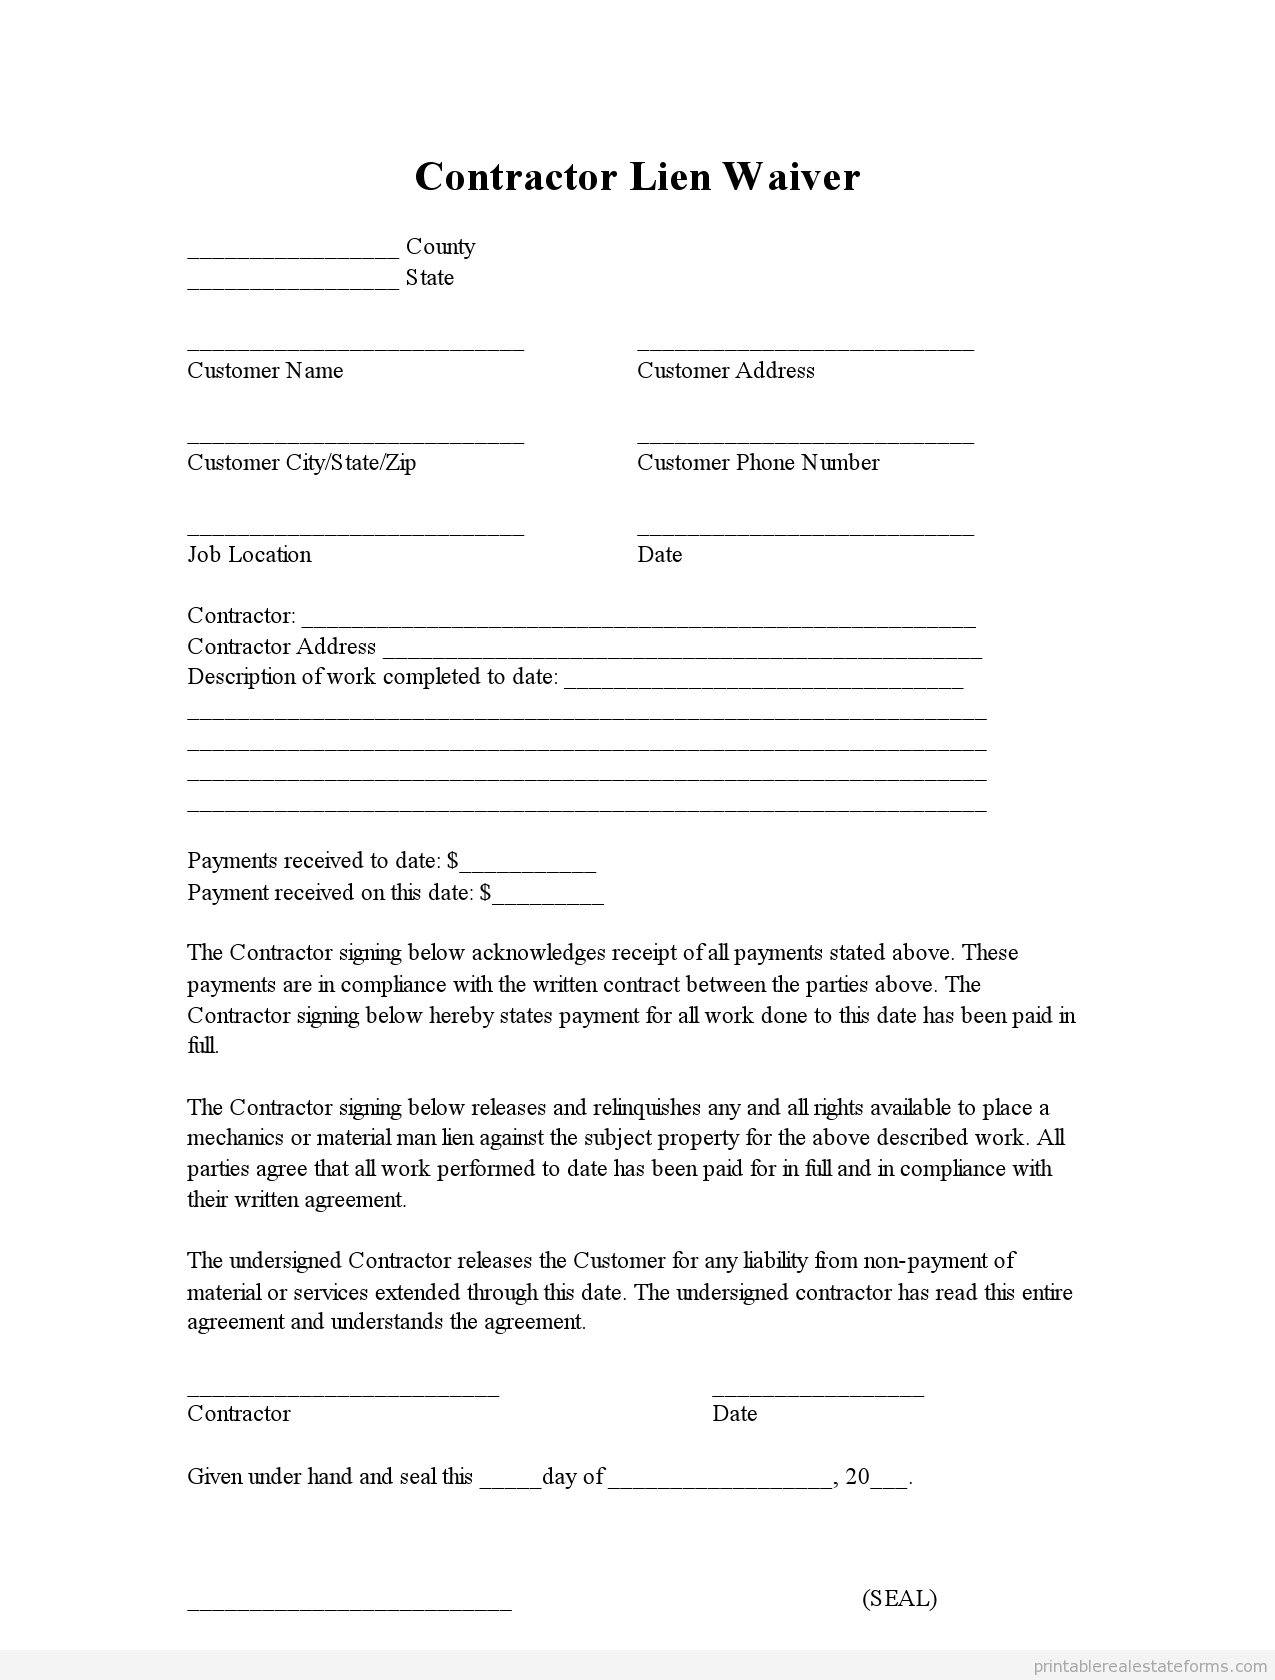 Auto Lien Release Letter Template - Sample Printable Contractor Lien Waiver form